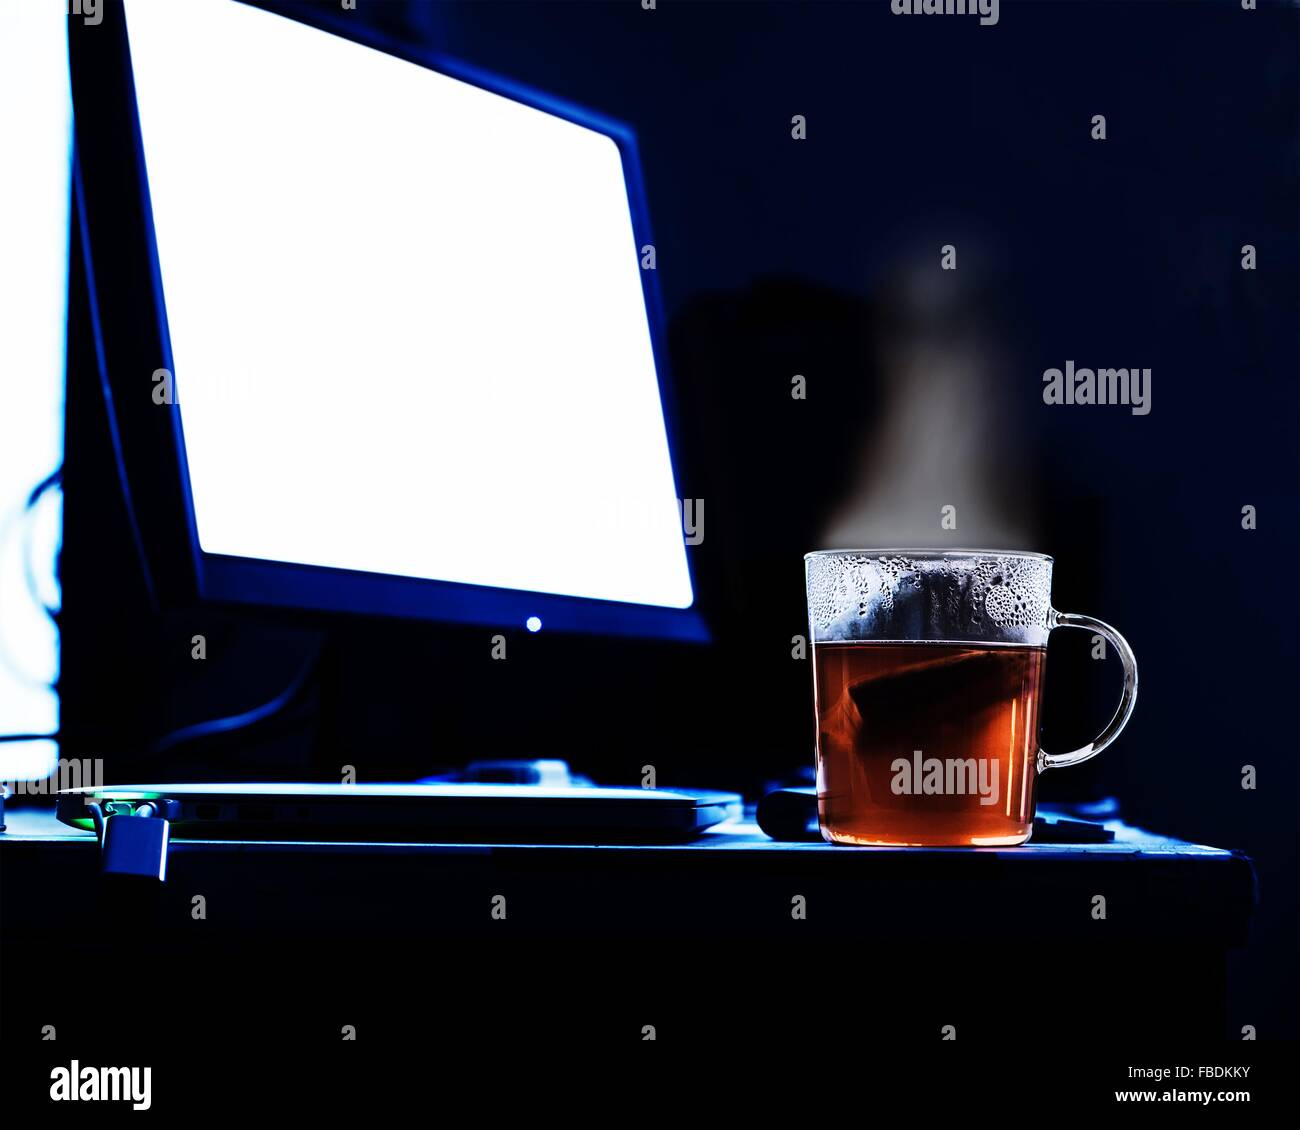 Close-Up Of Fresh Tea By Computer Monitor On Desk - Stock Image